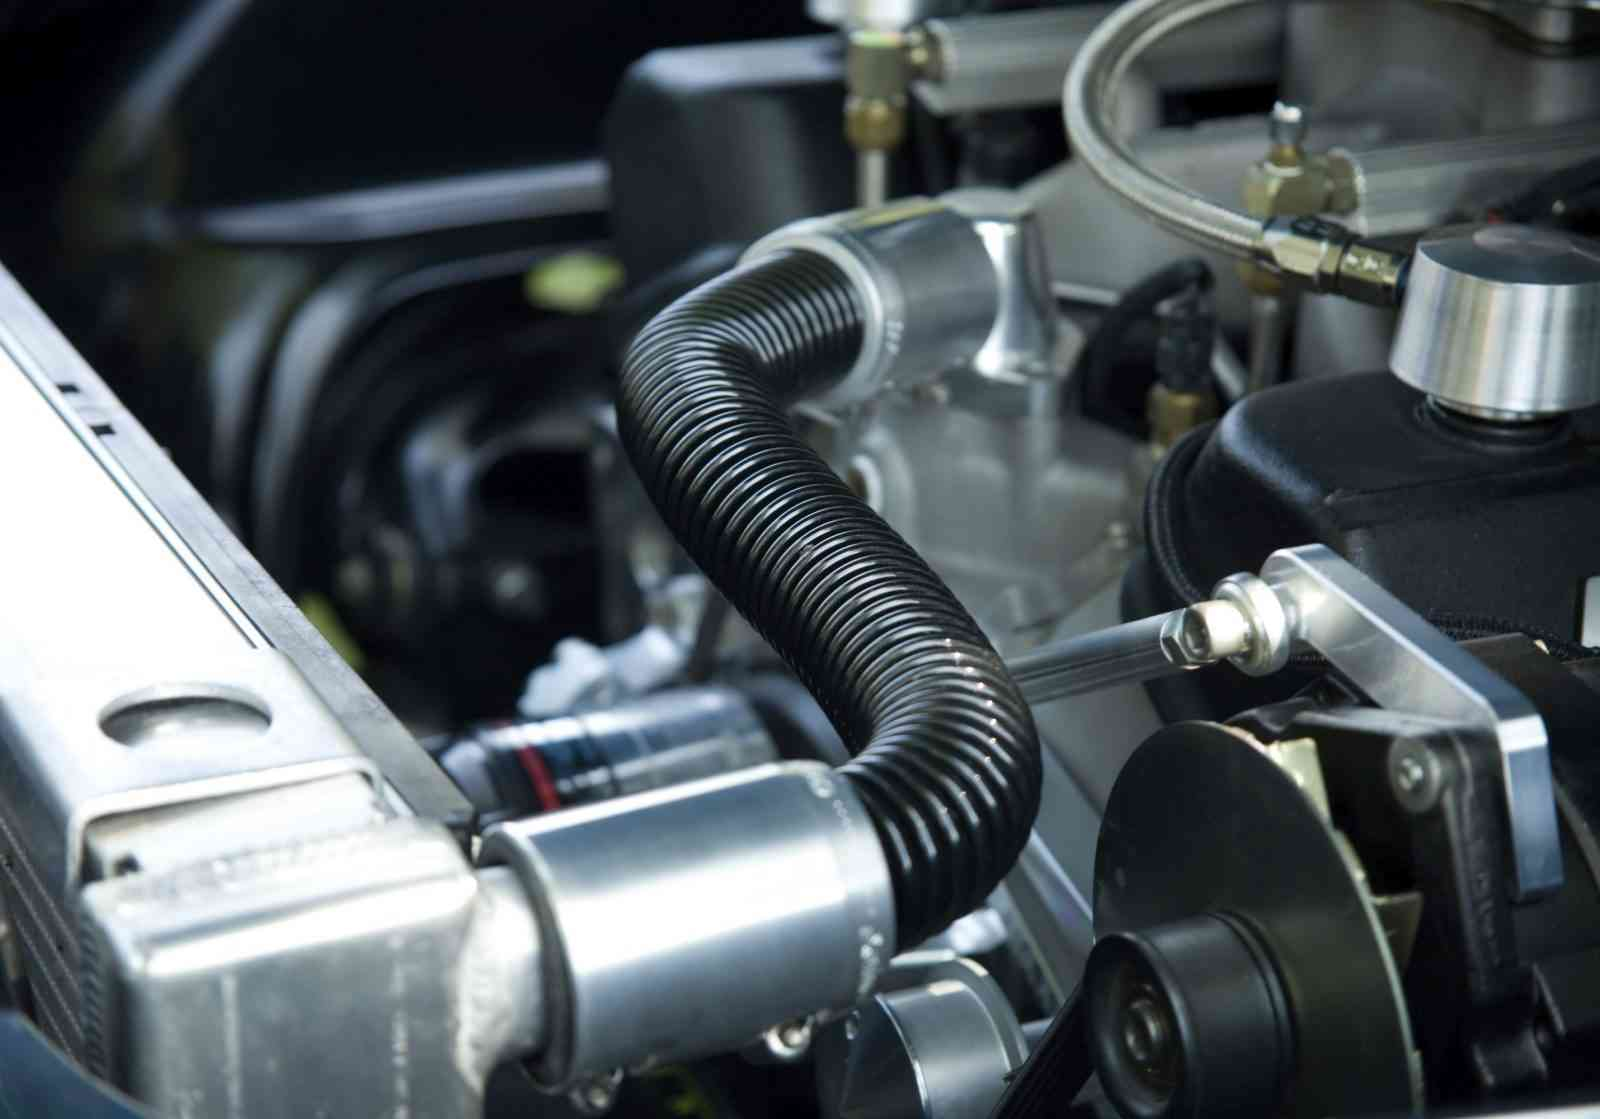 bad motor mount - what should you know about it